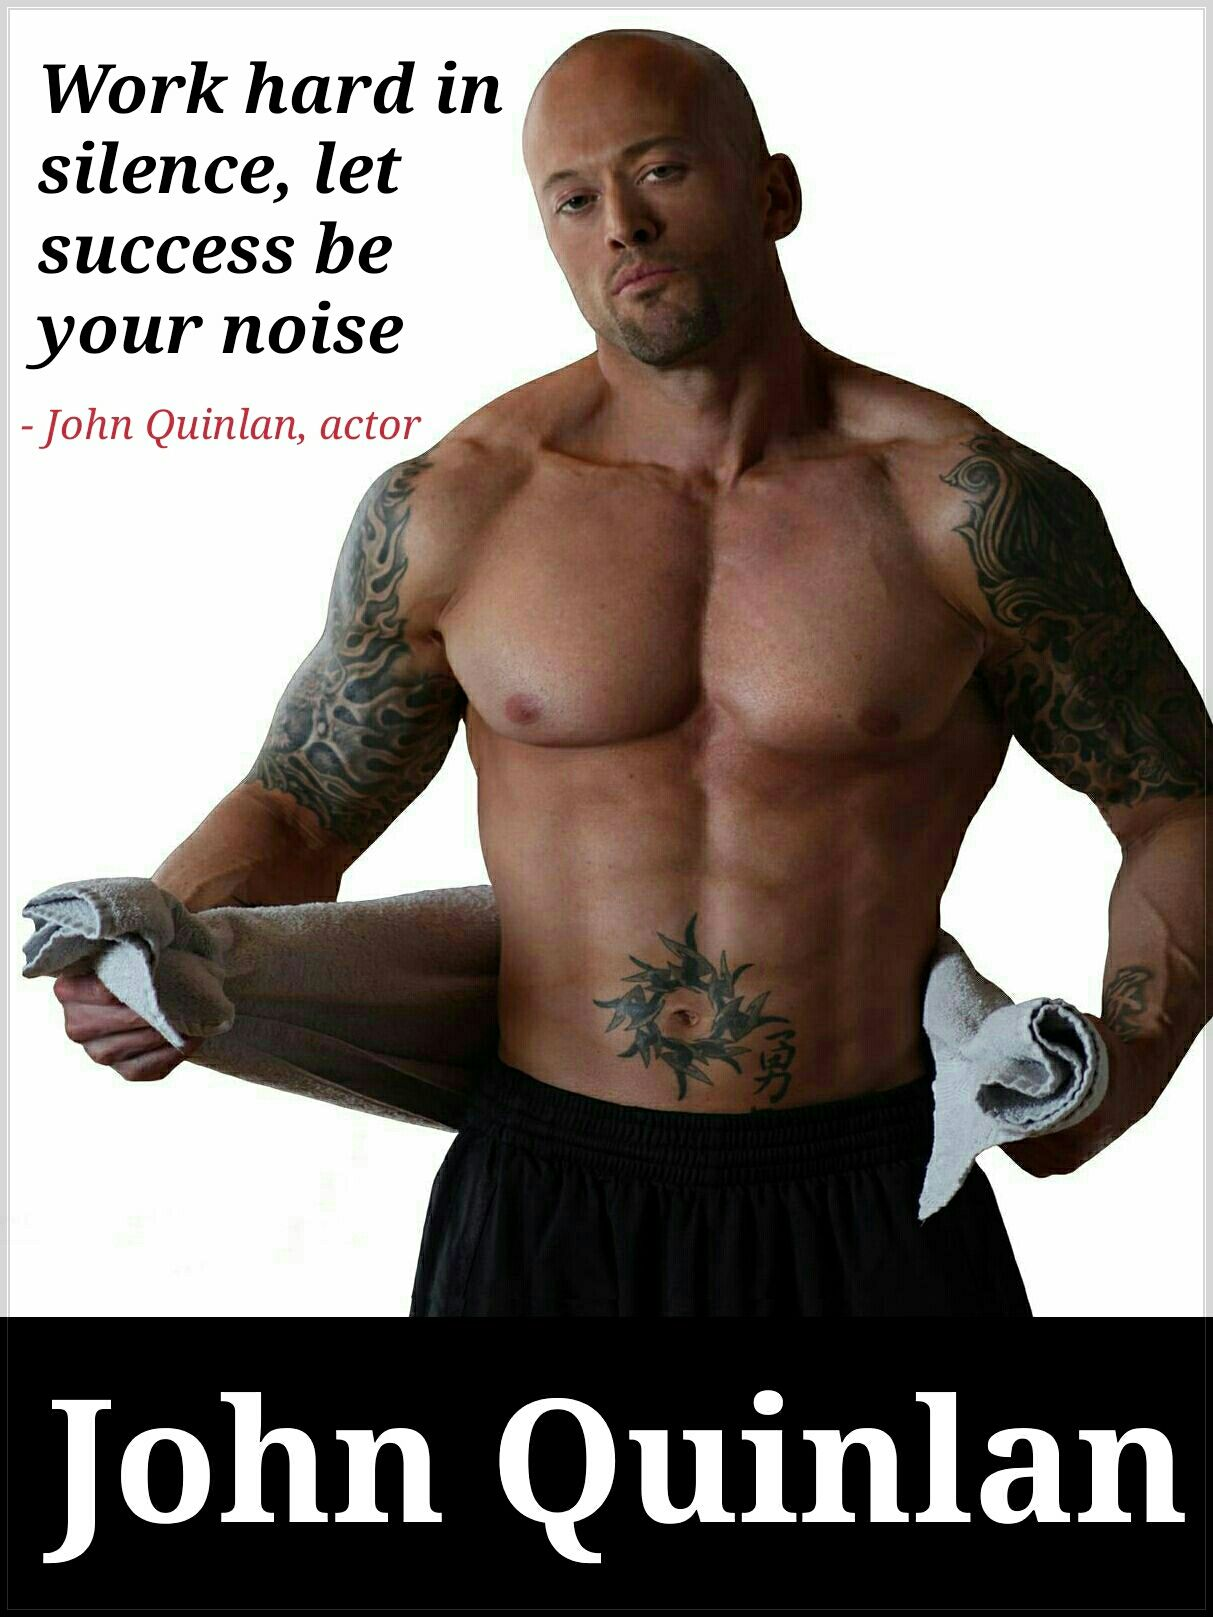 Physique Fitness Cover Model & Actor John Joseph Quinlan Hard Work #JohnQuinlan